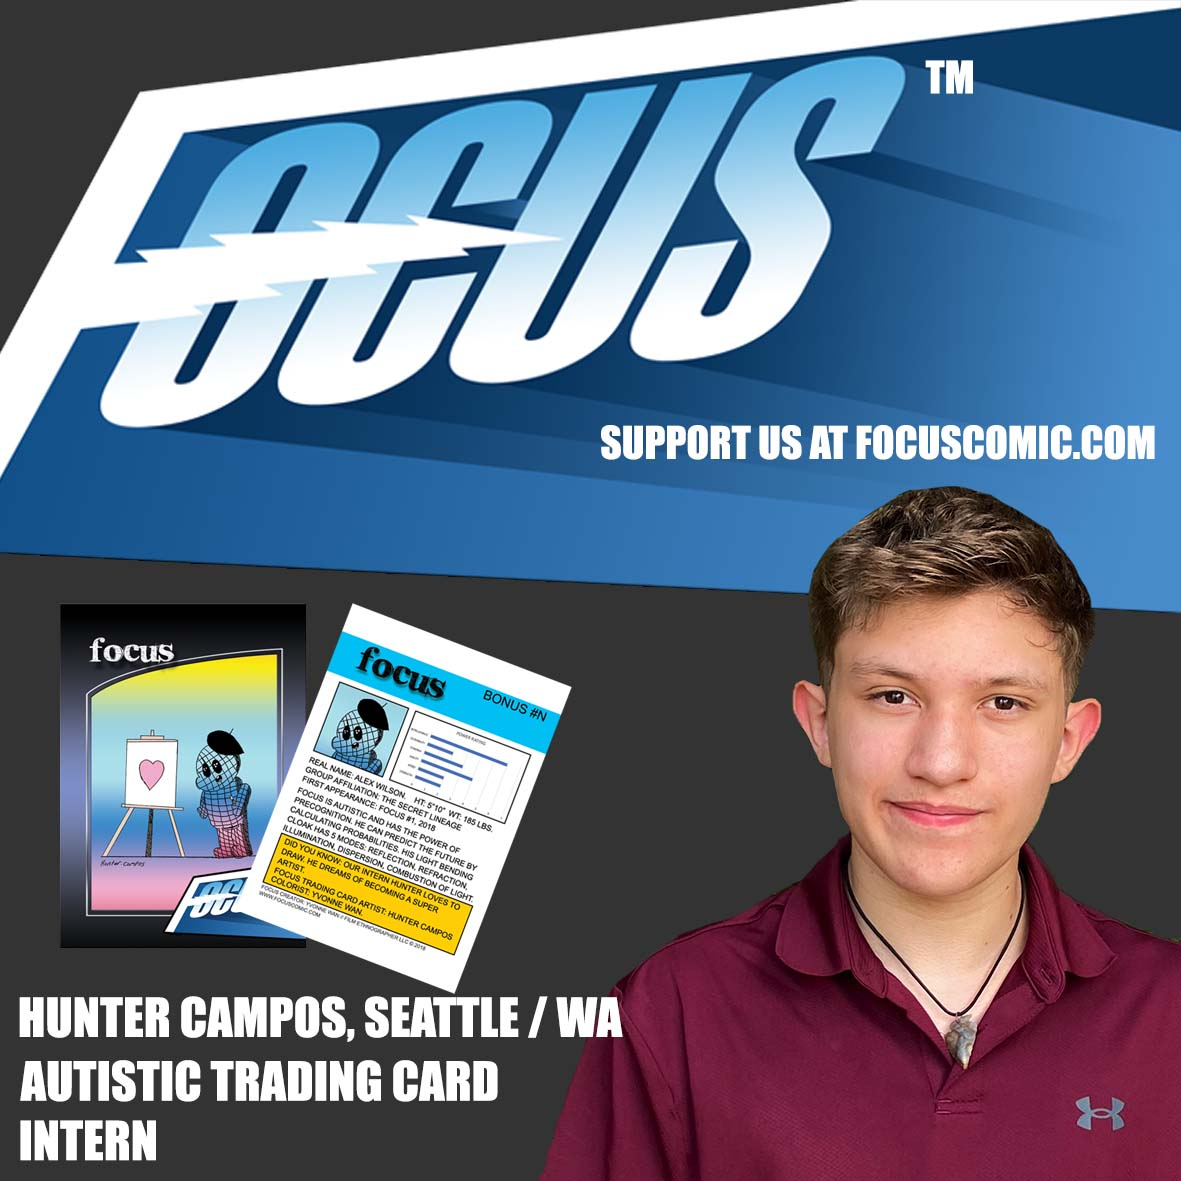 Meet our new autistic Trading Card intern: Hunter Campos, 14 years old. Please support his art